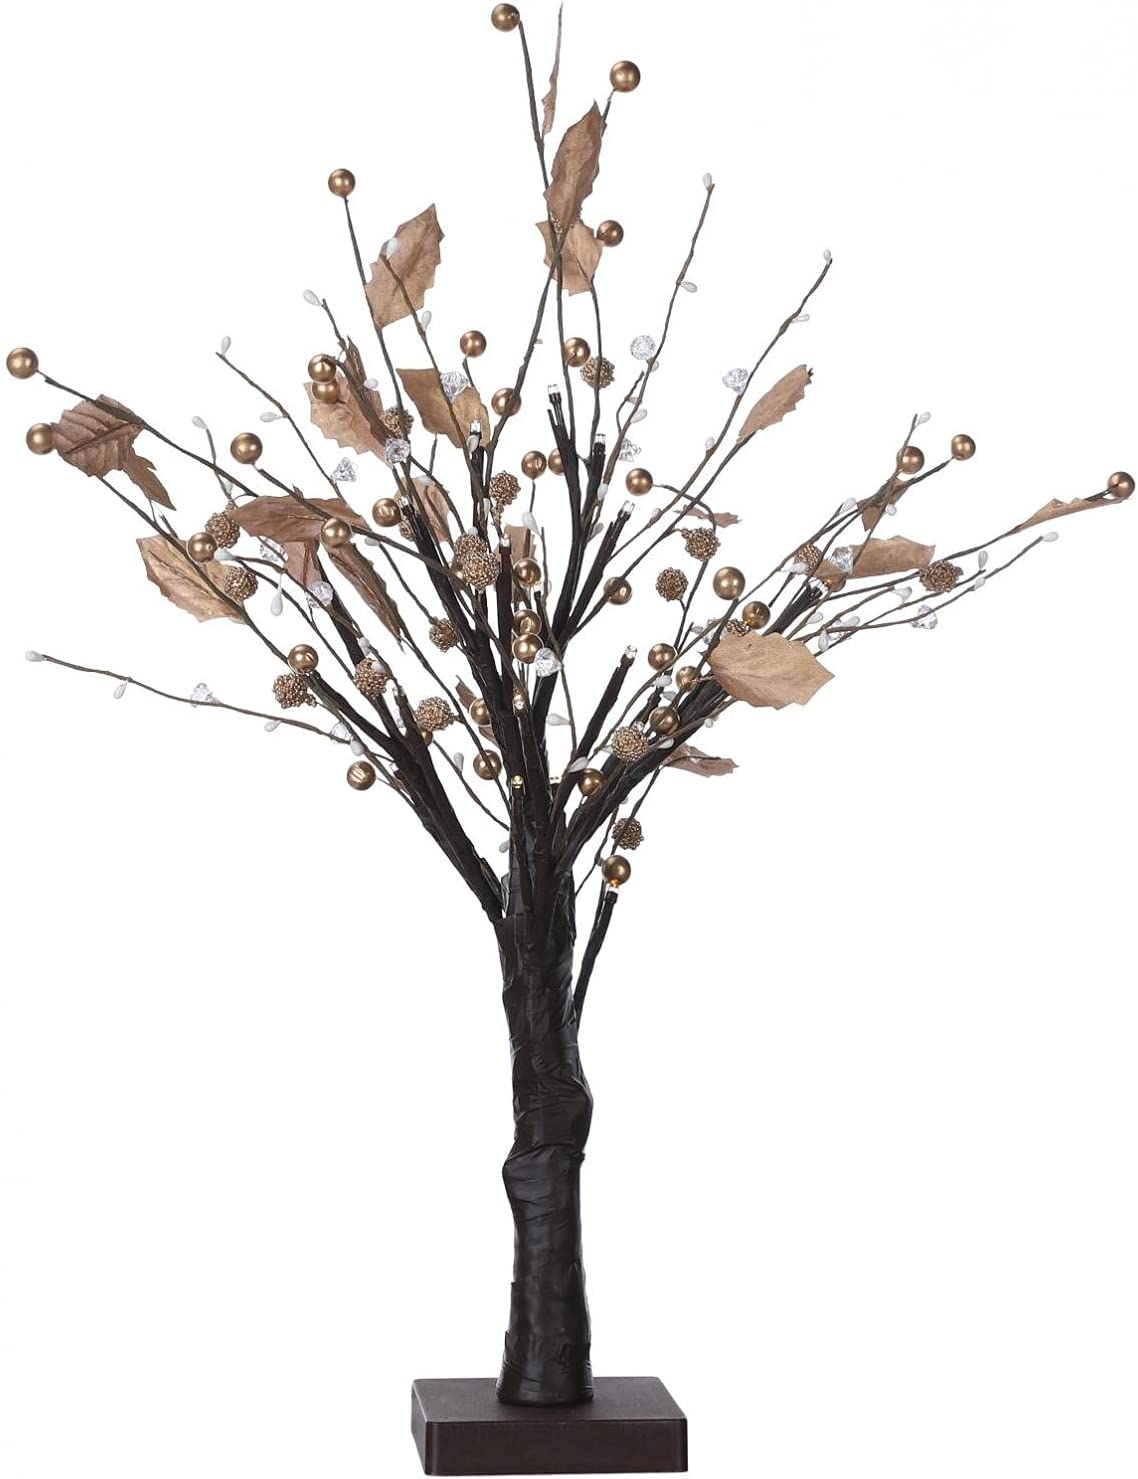 VICXYY Tree Lights Dotted free Super sale period limited with White Warm LED Cherries 24